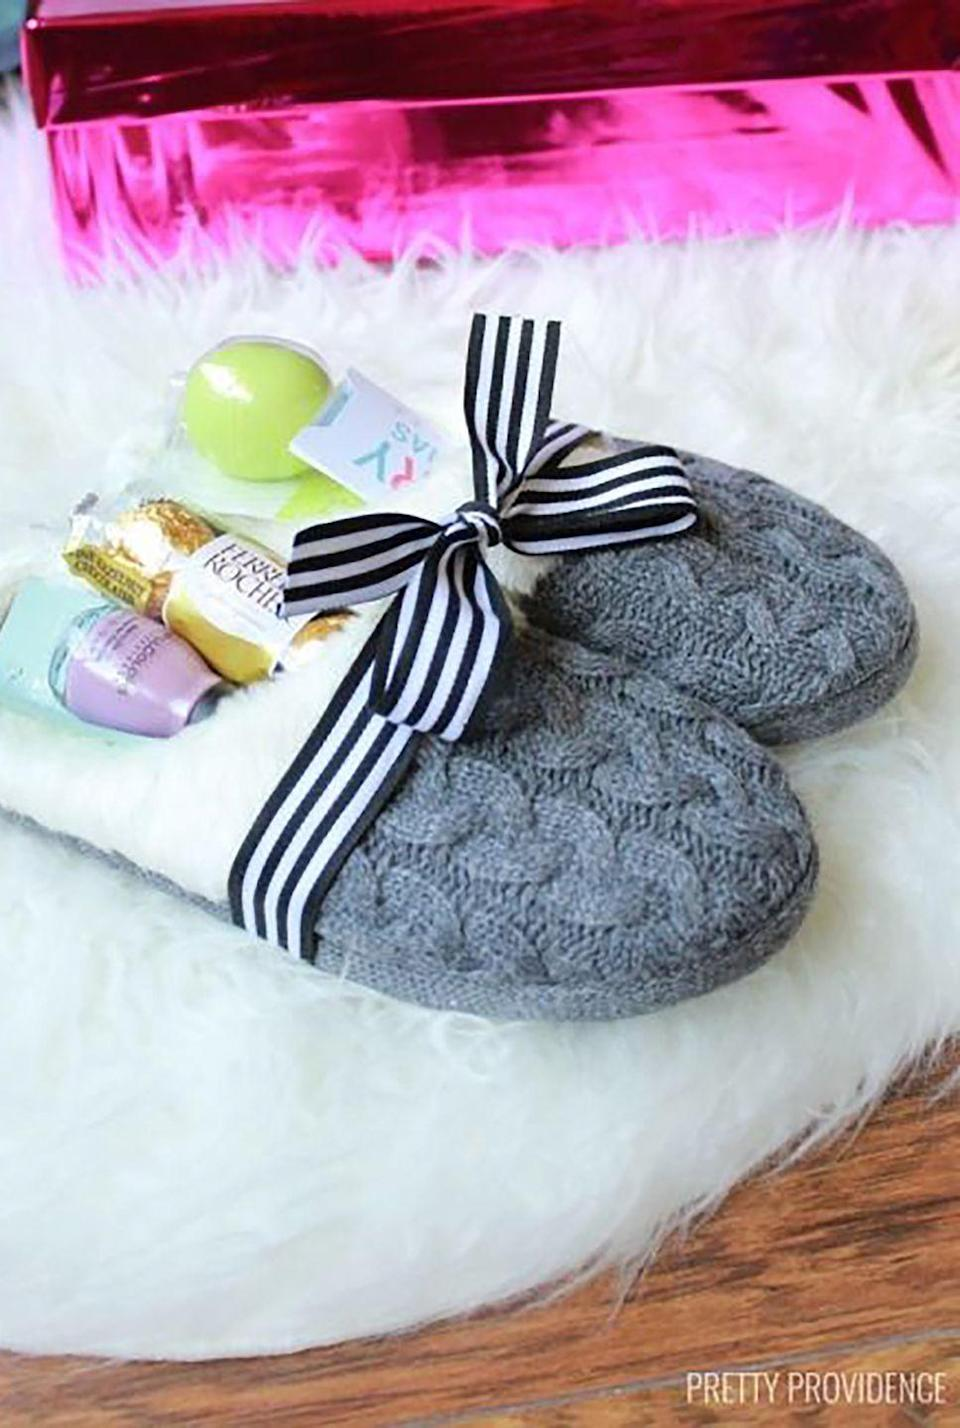 """<p>Fill a pair of cozy slippers with goodies, such as <a href=""""https://www.amazon.com/dp/B00BXS0NKU?ref_=ams_ad_dp_asin_1&tag=syn-yahoo-20&ascsubtag=%5Bartid%7C10050.g.645%5Bsrc%7Cyahoo-us"""" rel=""""nofollow noopener"""" target=""""_blank"""" data-ylk=""""slk:nail polish"""" class=""""link rapid-noclick-resp"""">nail polish</a>, candy, or <a href=""""https://www.amazon.com/Burts-Bees-Natural-Moisturizing-Beeswax/dp/B0054LHI5A?tag=syn-yahoo-20&ascsubtag=%5Bartid%7C10050.g.645%5Bsrc%7Cyahoo-us"""" rel=""""nofollow noopener"""" target=""""_blank"""" data-ylk=""""slk:lip balm"""" class=""""link rapid-noclick-resp"""">lip balm</a>. </p><p><strong>Get the tutorial at <a href=""""http://prettyprovidence.com/slippers-gift-idea/"""" rel=""""nofollow noopener"""" target=""""_blank"""" data-ylk=""""slk:Pretty Providence"""" class=""""link rapid-noclick-resp"""">Pretty Providence</a>.</strong></p><p><strong><a class=""""link rapid-noclick-resp"""" href=""""https://www.amazon.com/slp/knit-slippers/nakqktv7mggd562?tag=syn-yahoo-20&ascsubtag=%5Bartid%7C10050.g.645%5Bsrc%7Cyahoo-us"""" rel=""""nofollow noopener"""" target=""""_blank"""" data-ylk=""""slk:SHOP SLIPPERS"""">SHOP SLIPPERS</a><br></strong></p>"""